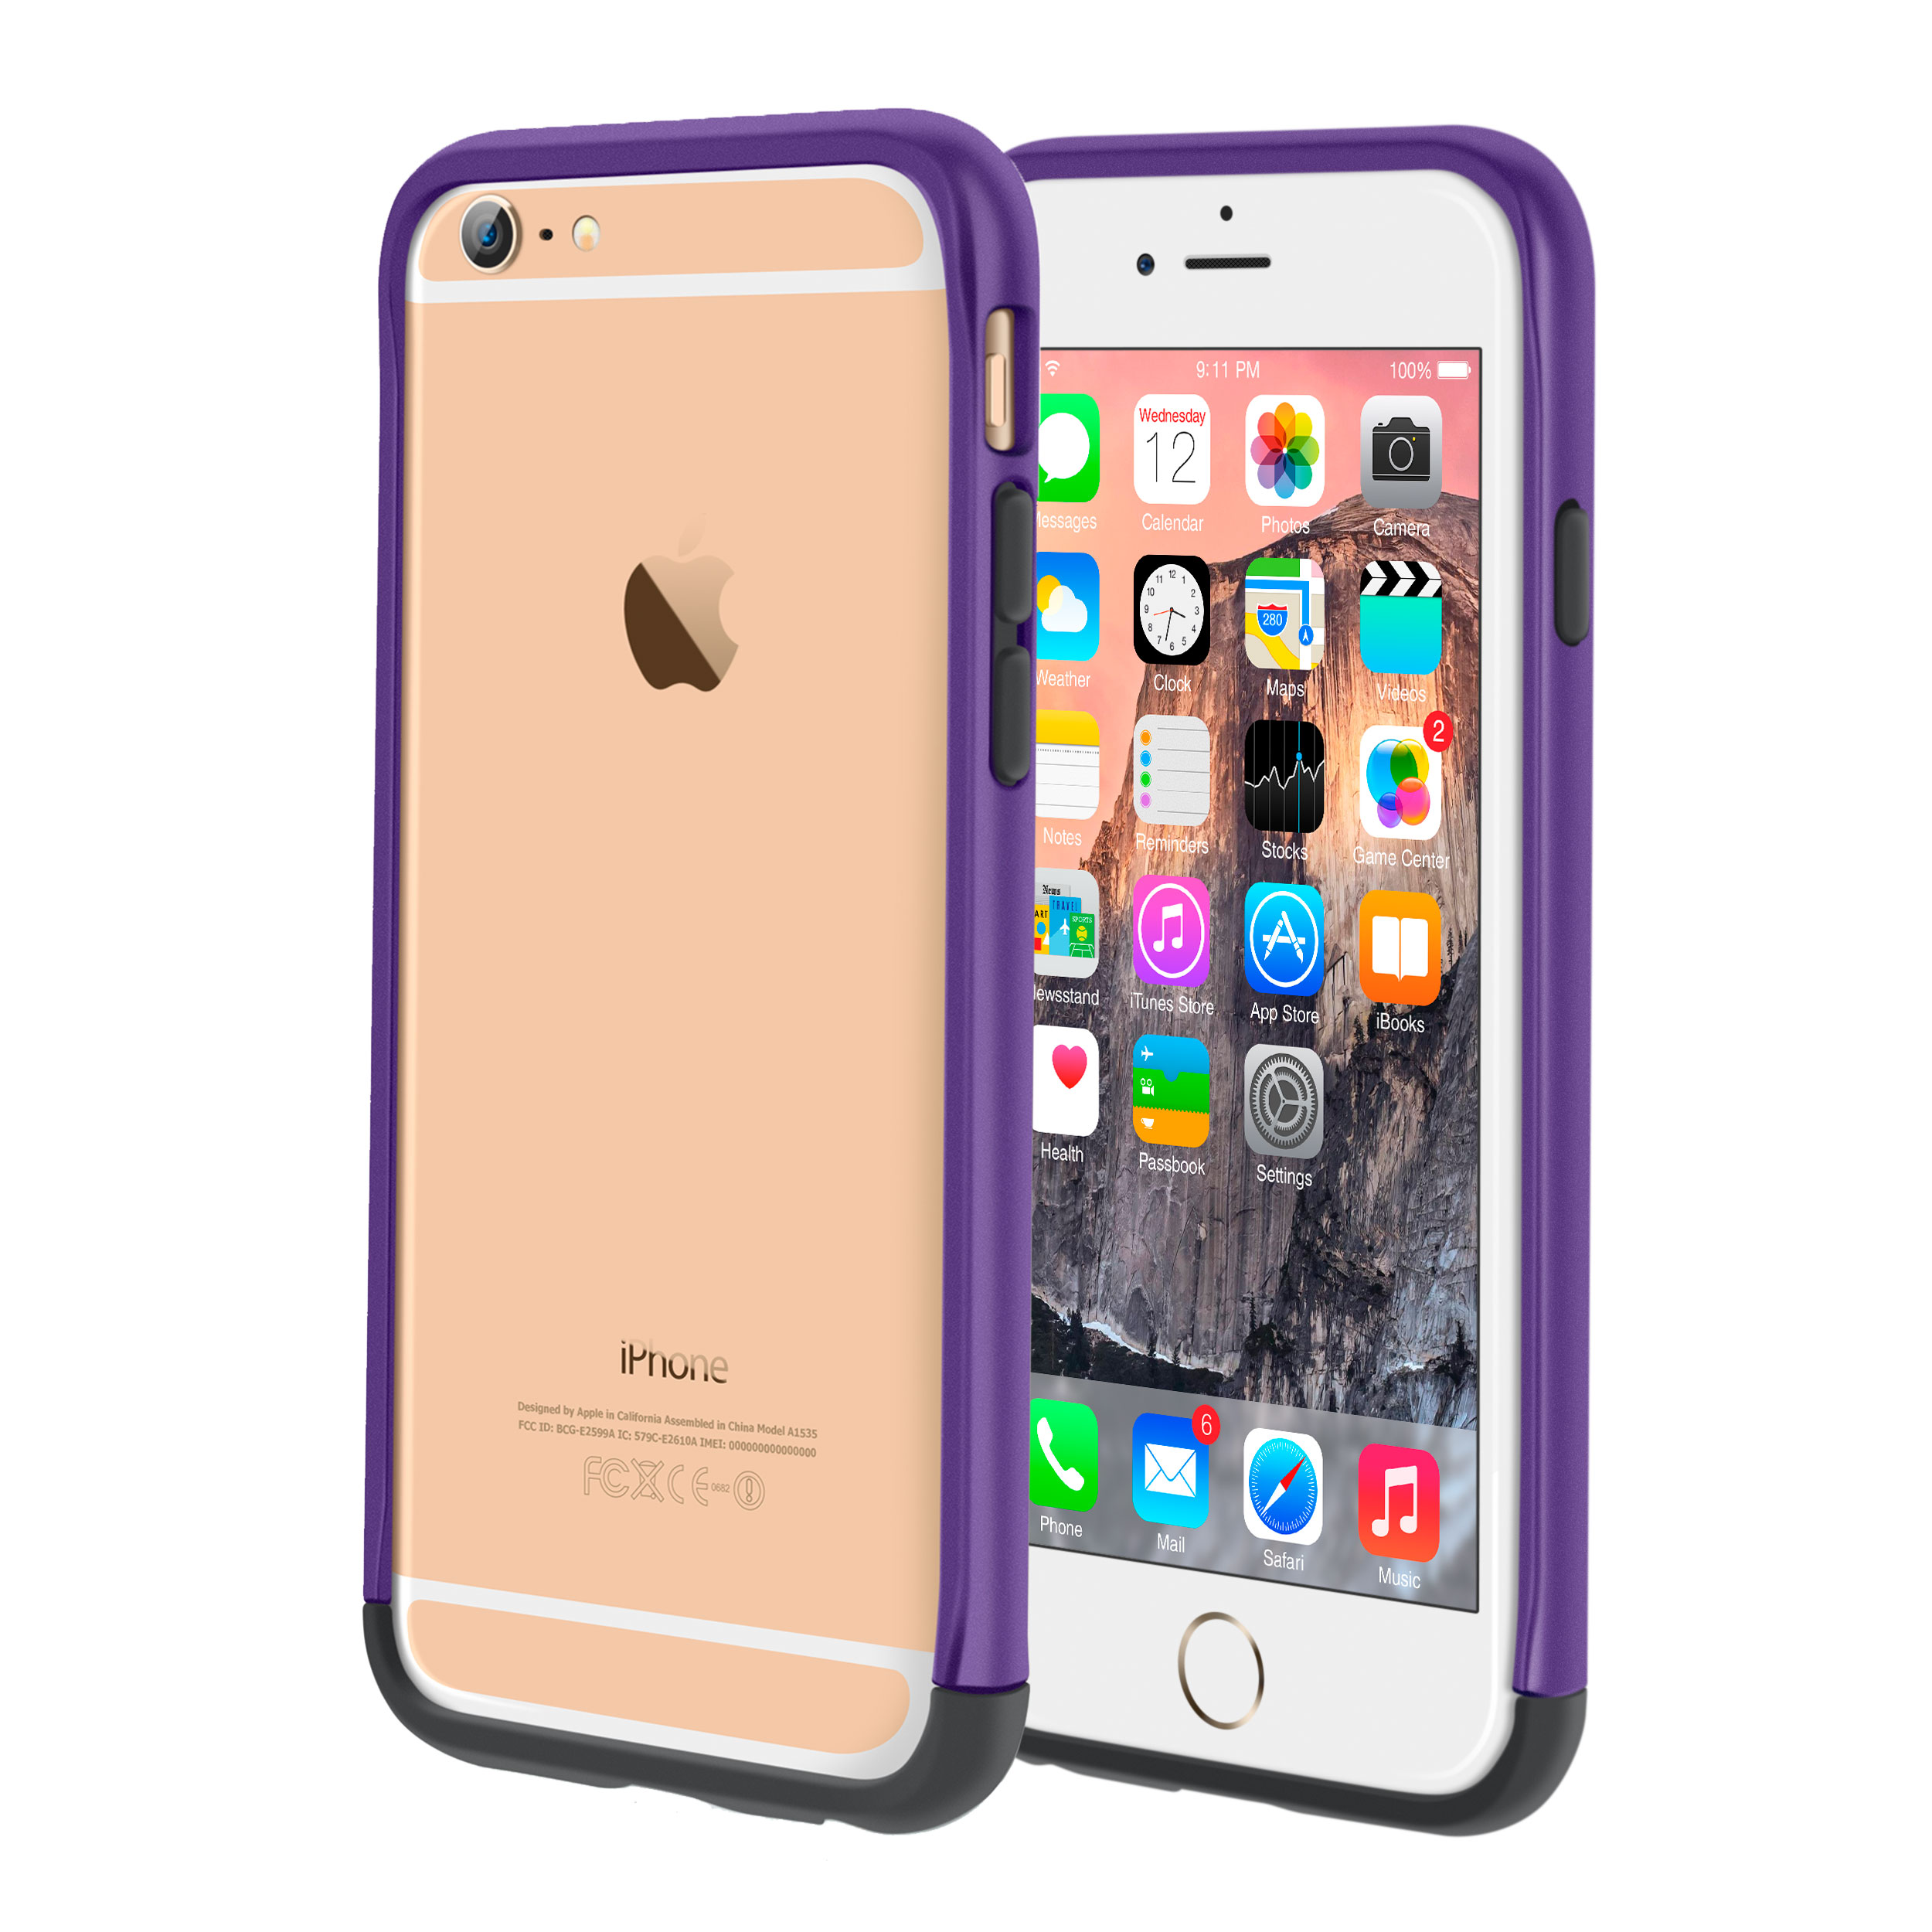 iPhone 6s Case, roocase iPhone 6 Bumper (Open Back Design) Ultra Slim Lightweight with Corner Edge Protection [Strio Bumper] Case Cover for Apple iPhone 6 / 6s (2015)